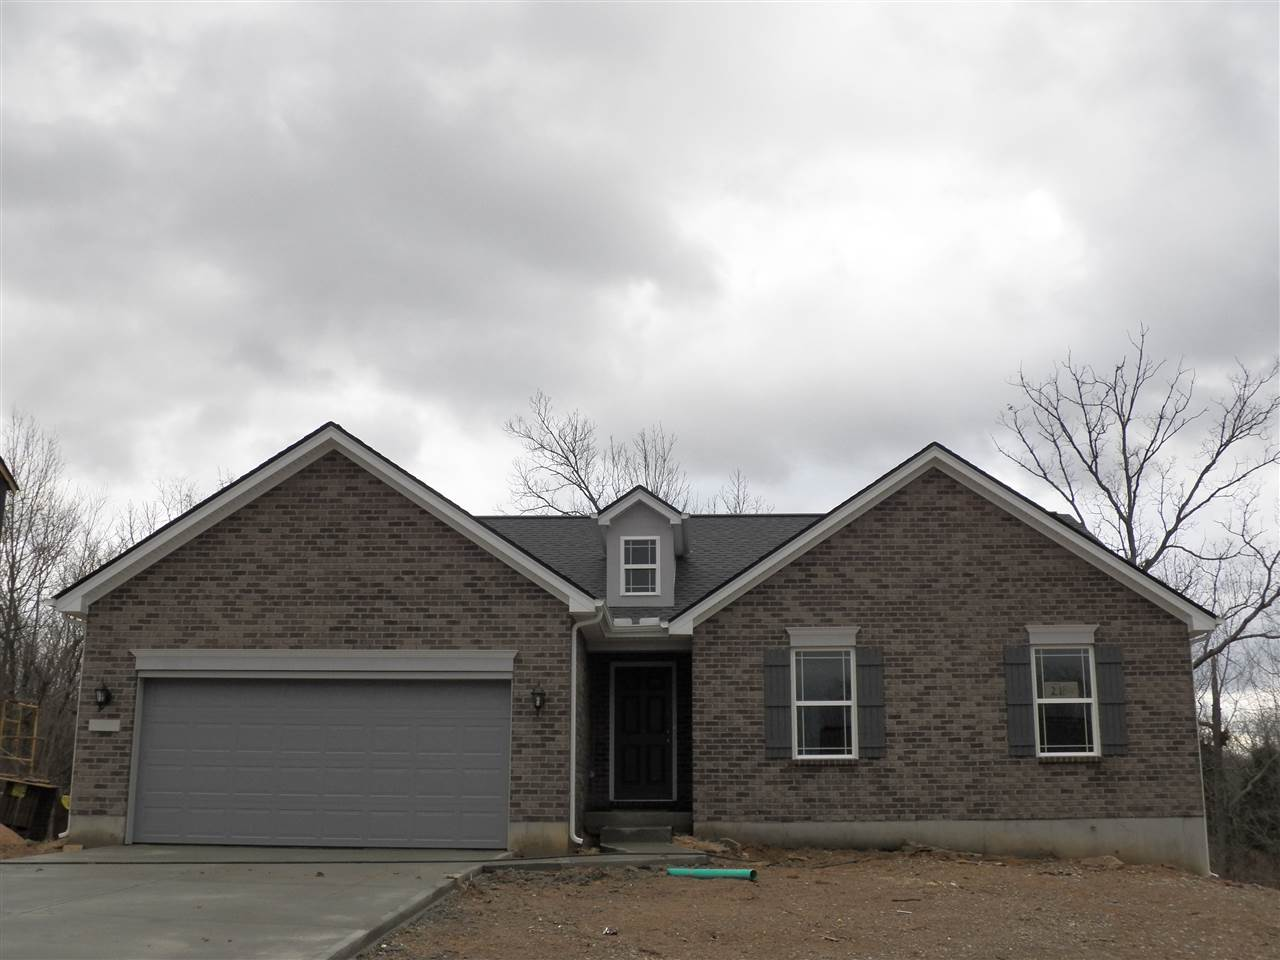 Photo 1 for 10737 Blooming Ct, 218GL Independence, KY 41051